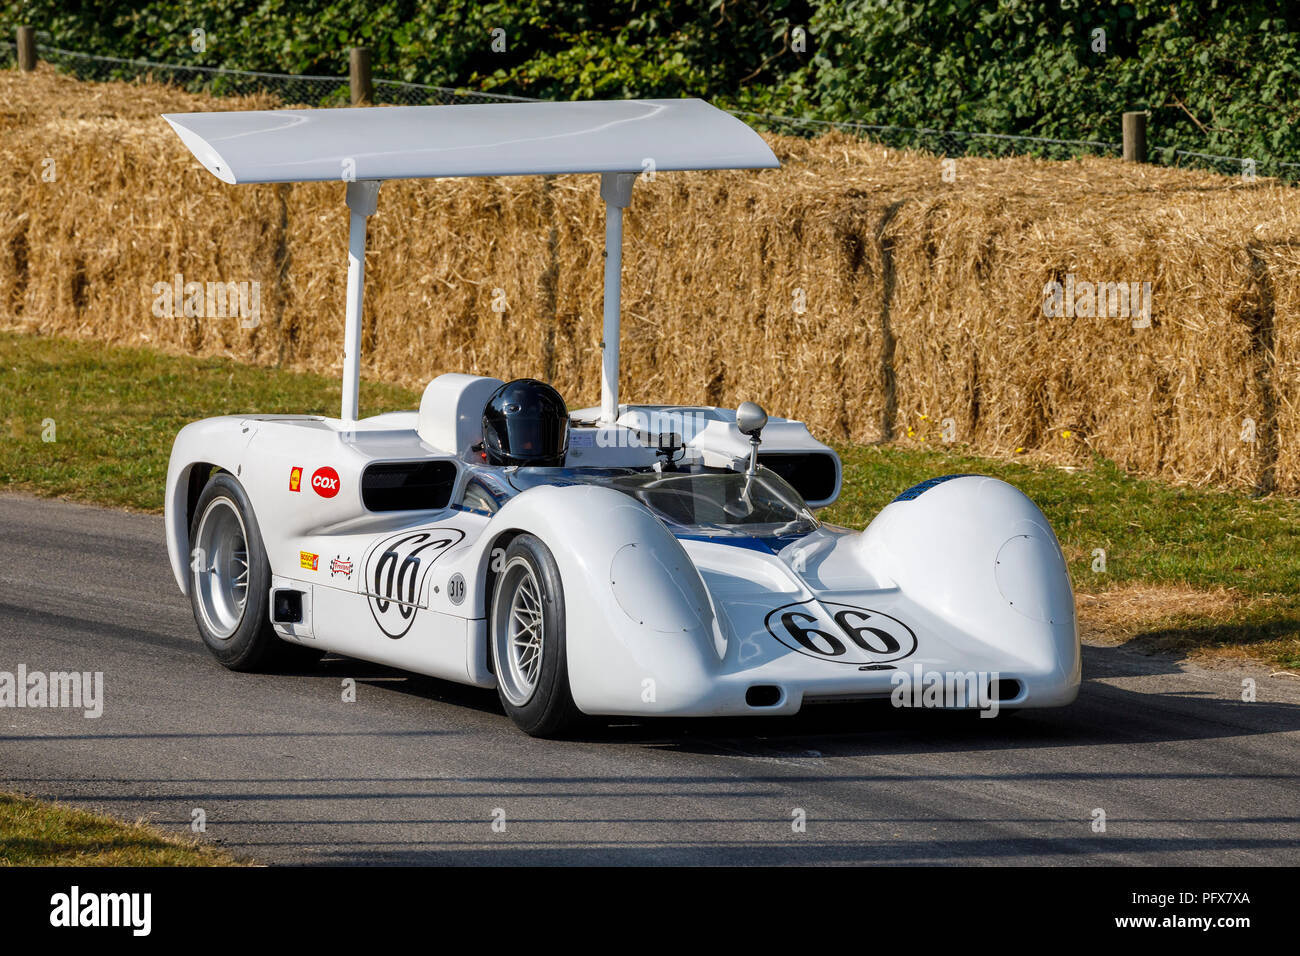 1966 Chaparral-Chevrolet 2E Can-Am racer with driver Kai Anderson at the 2018 Goodwood Festival of Speed, Sussex, UK. - Stock Image